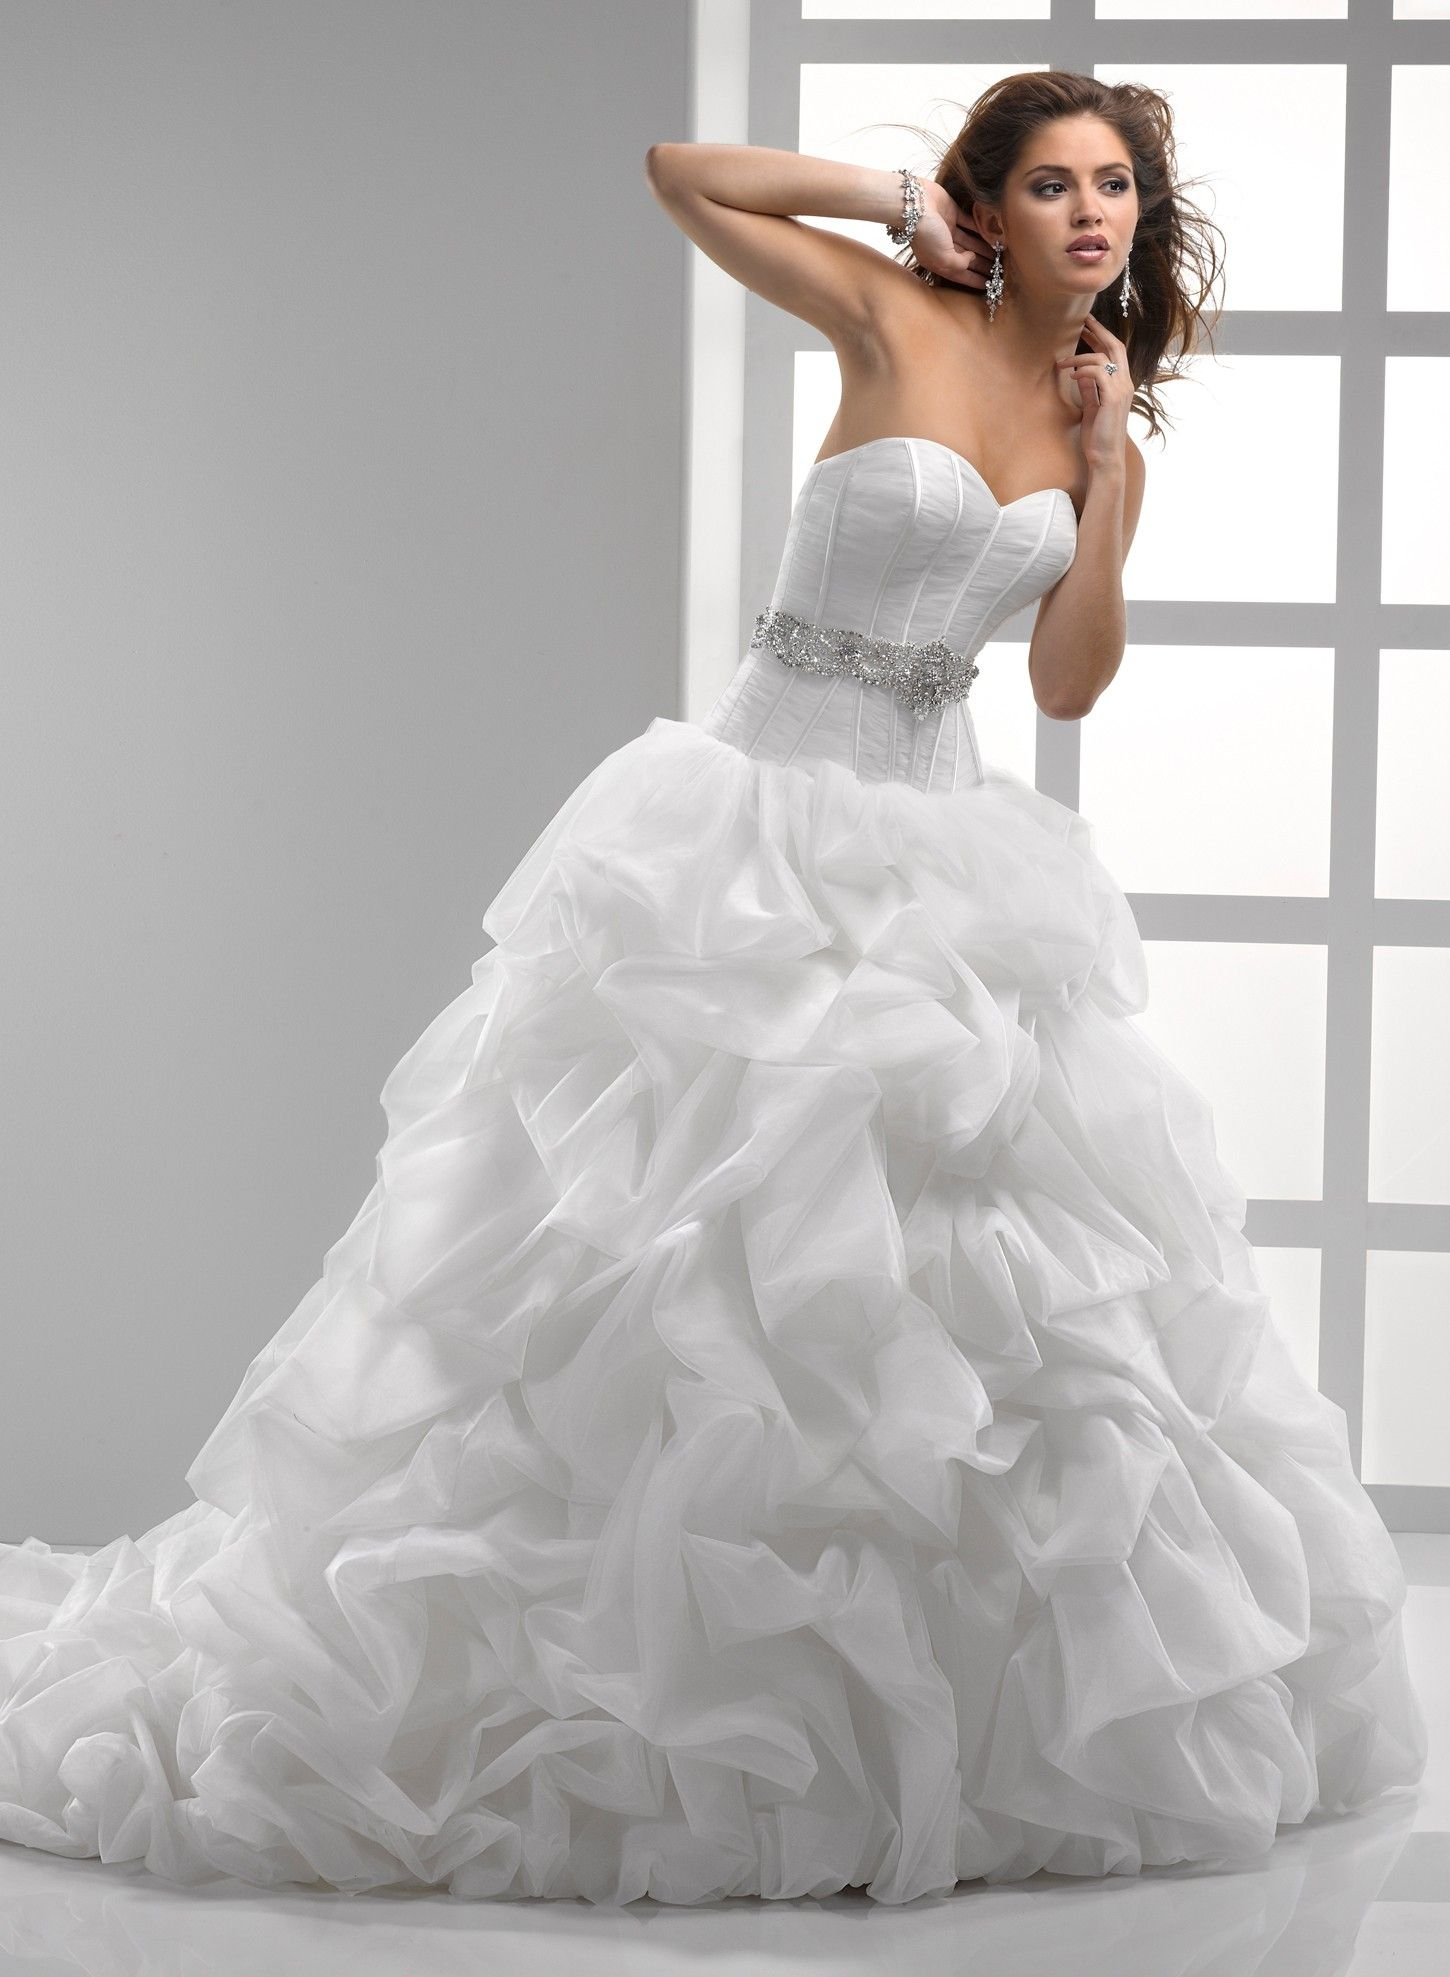 Fancy  winterwhitebridal Great bridal marketplace and listing site for Preowned Wedding Dresses